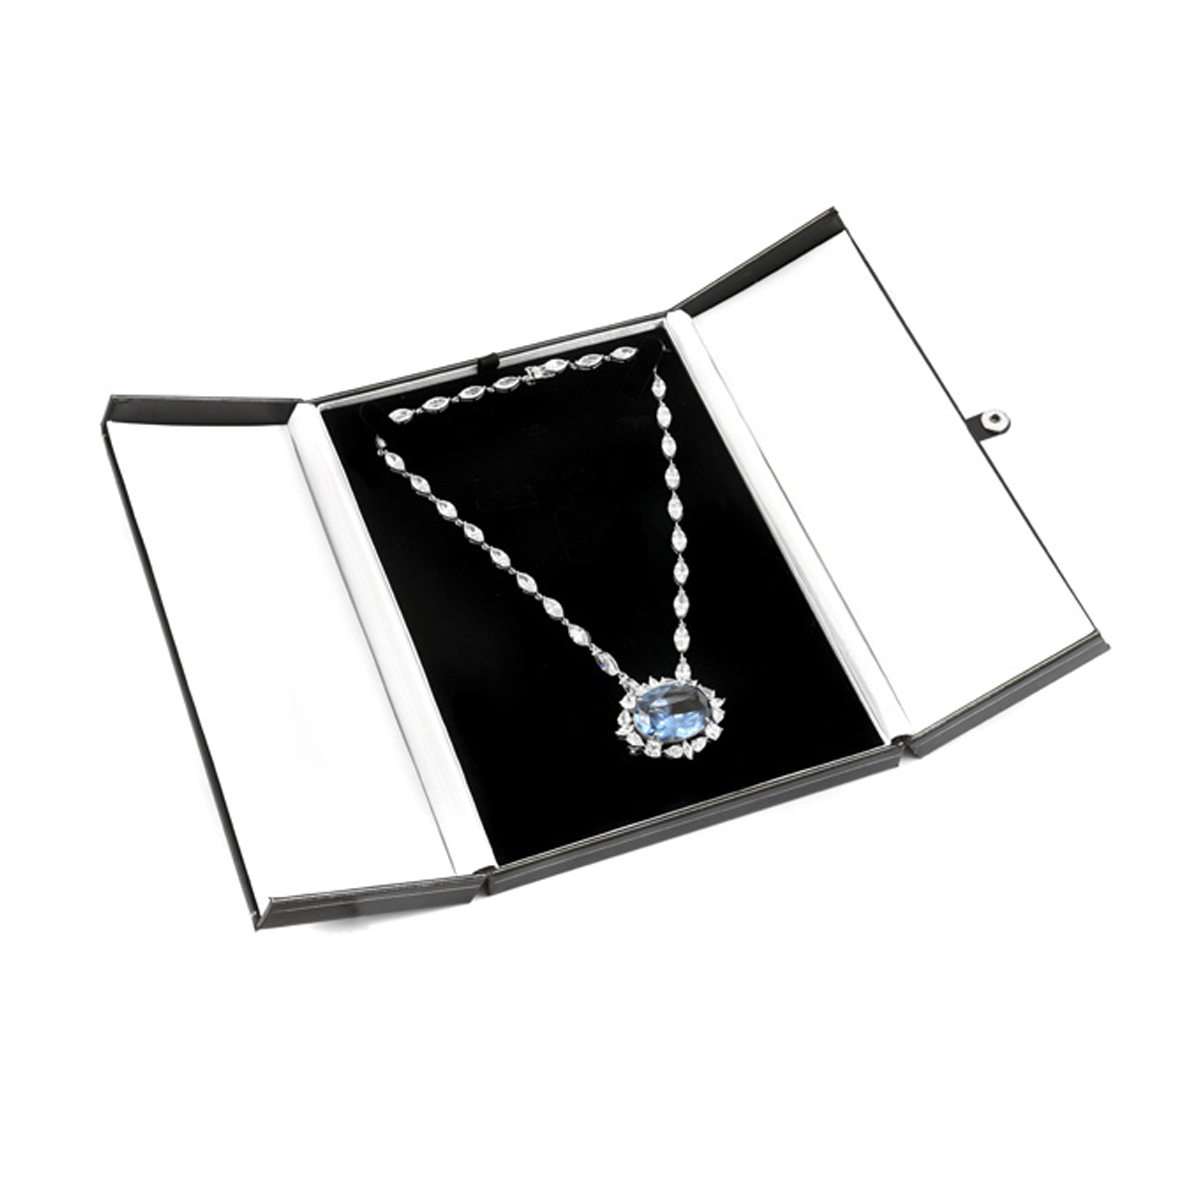 Necklace Jewelry Gift Box: Prestige Collection Black